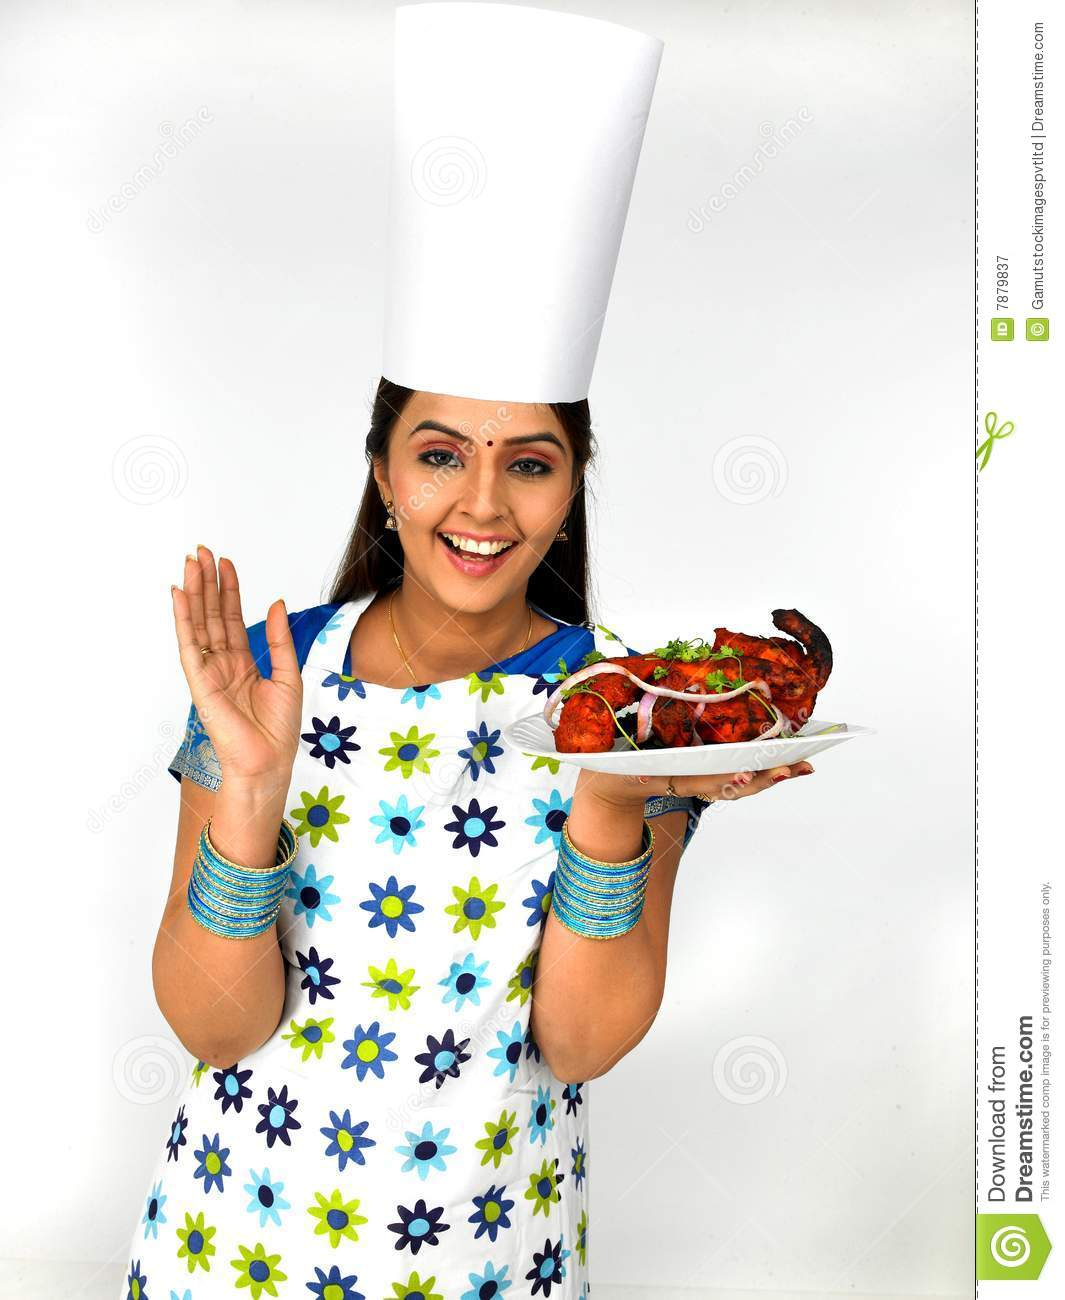 Indian lady chef clipart jpg freeuse library Indian lady chef clipart - ClipartFest jpg freeuse library